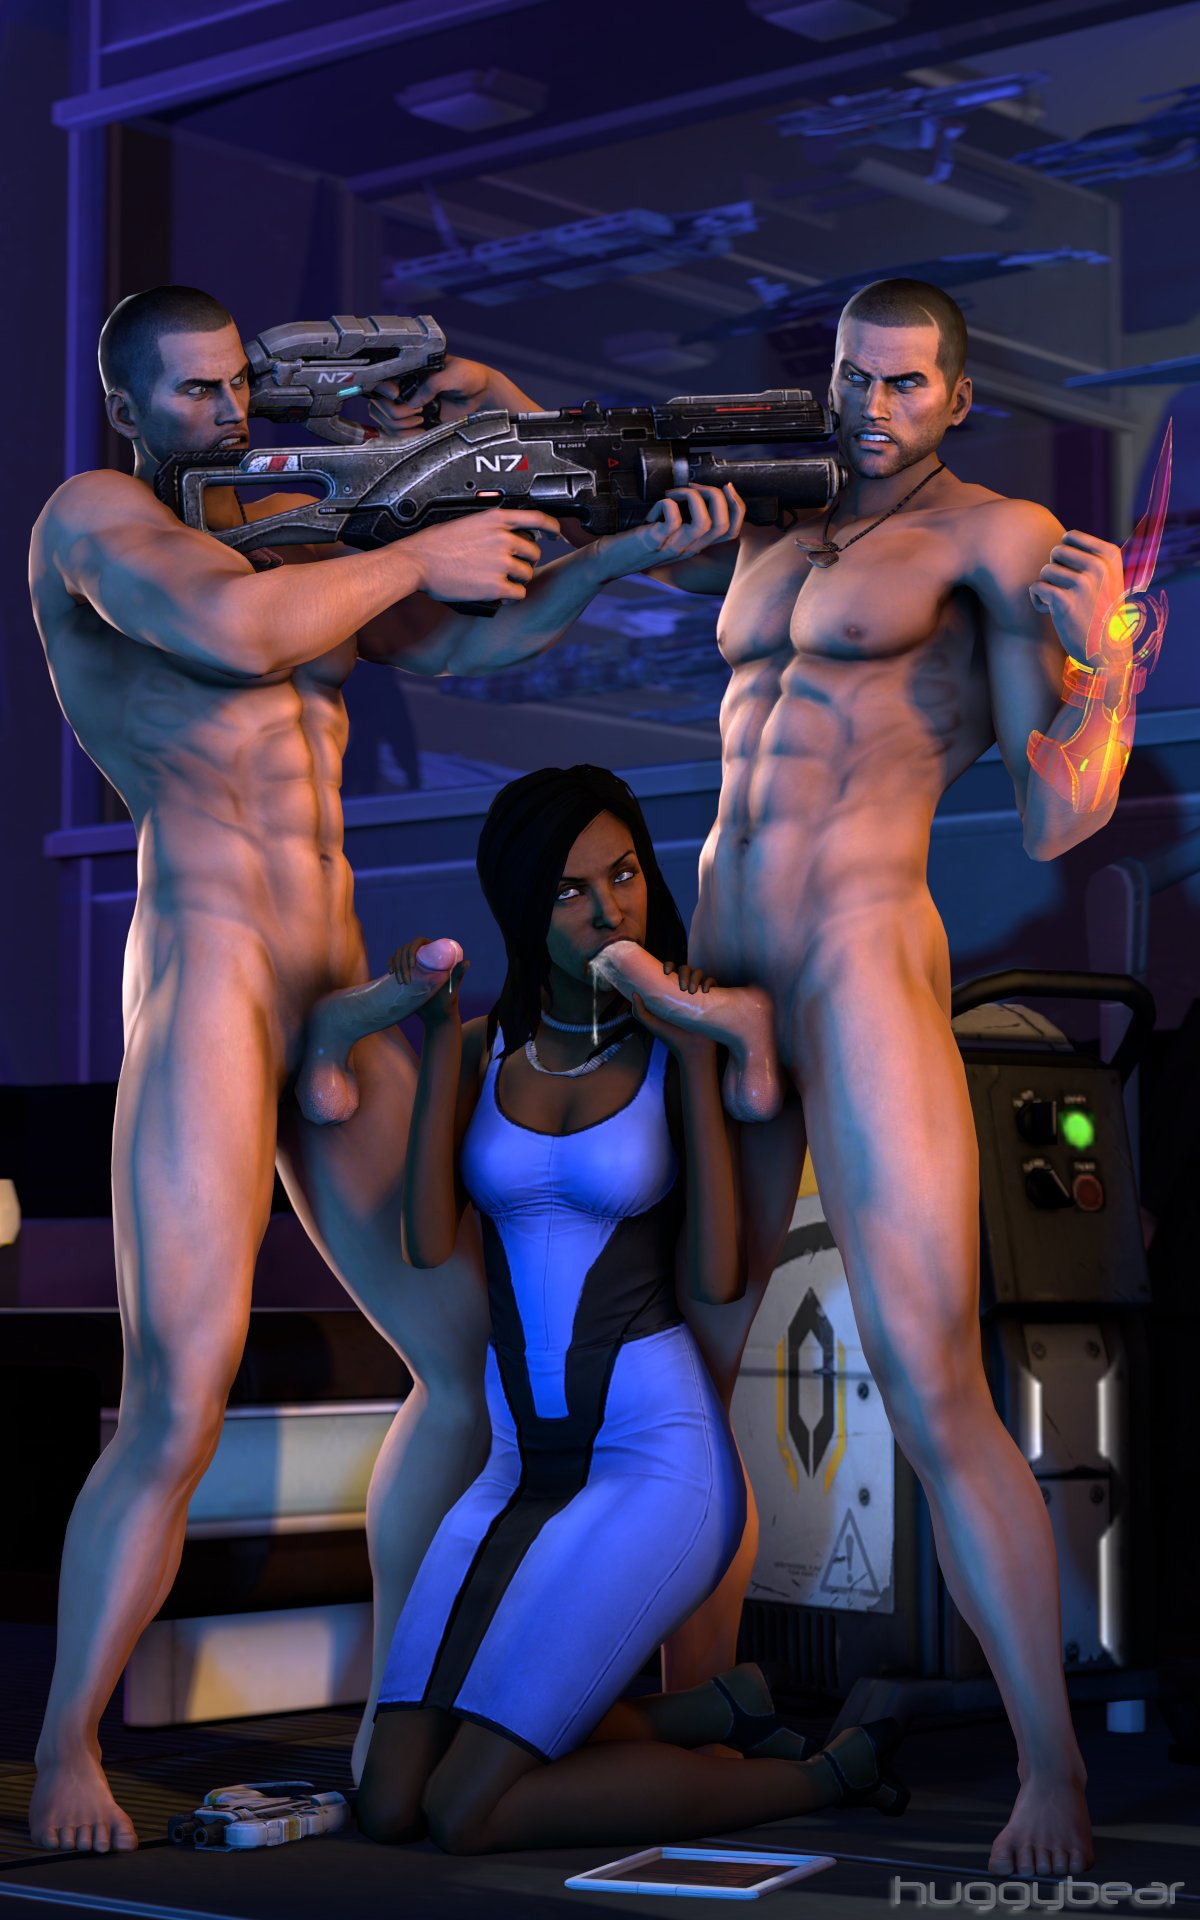 Mass effect porn videos free to download fucked doll